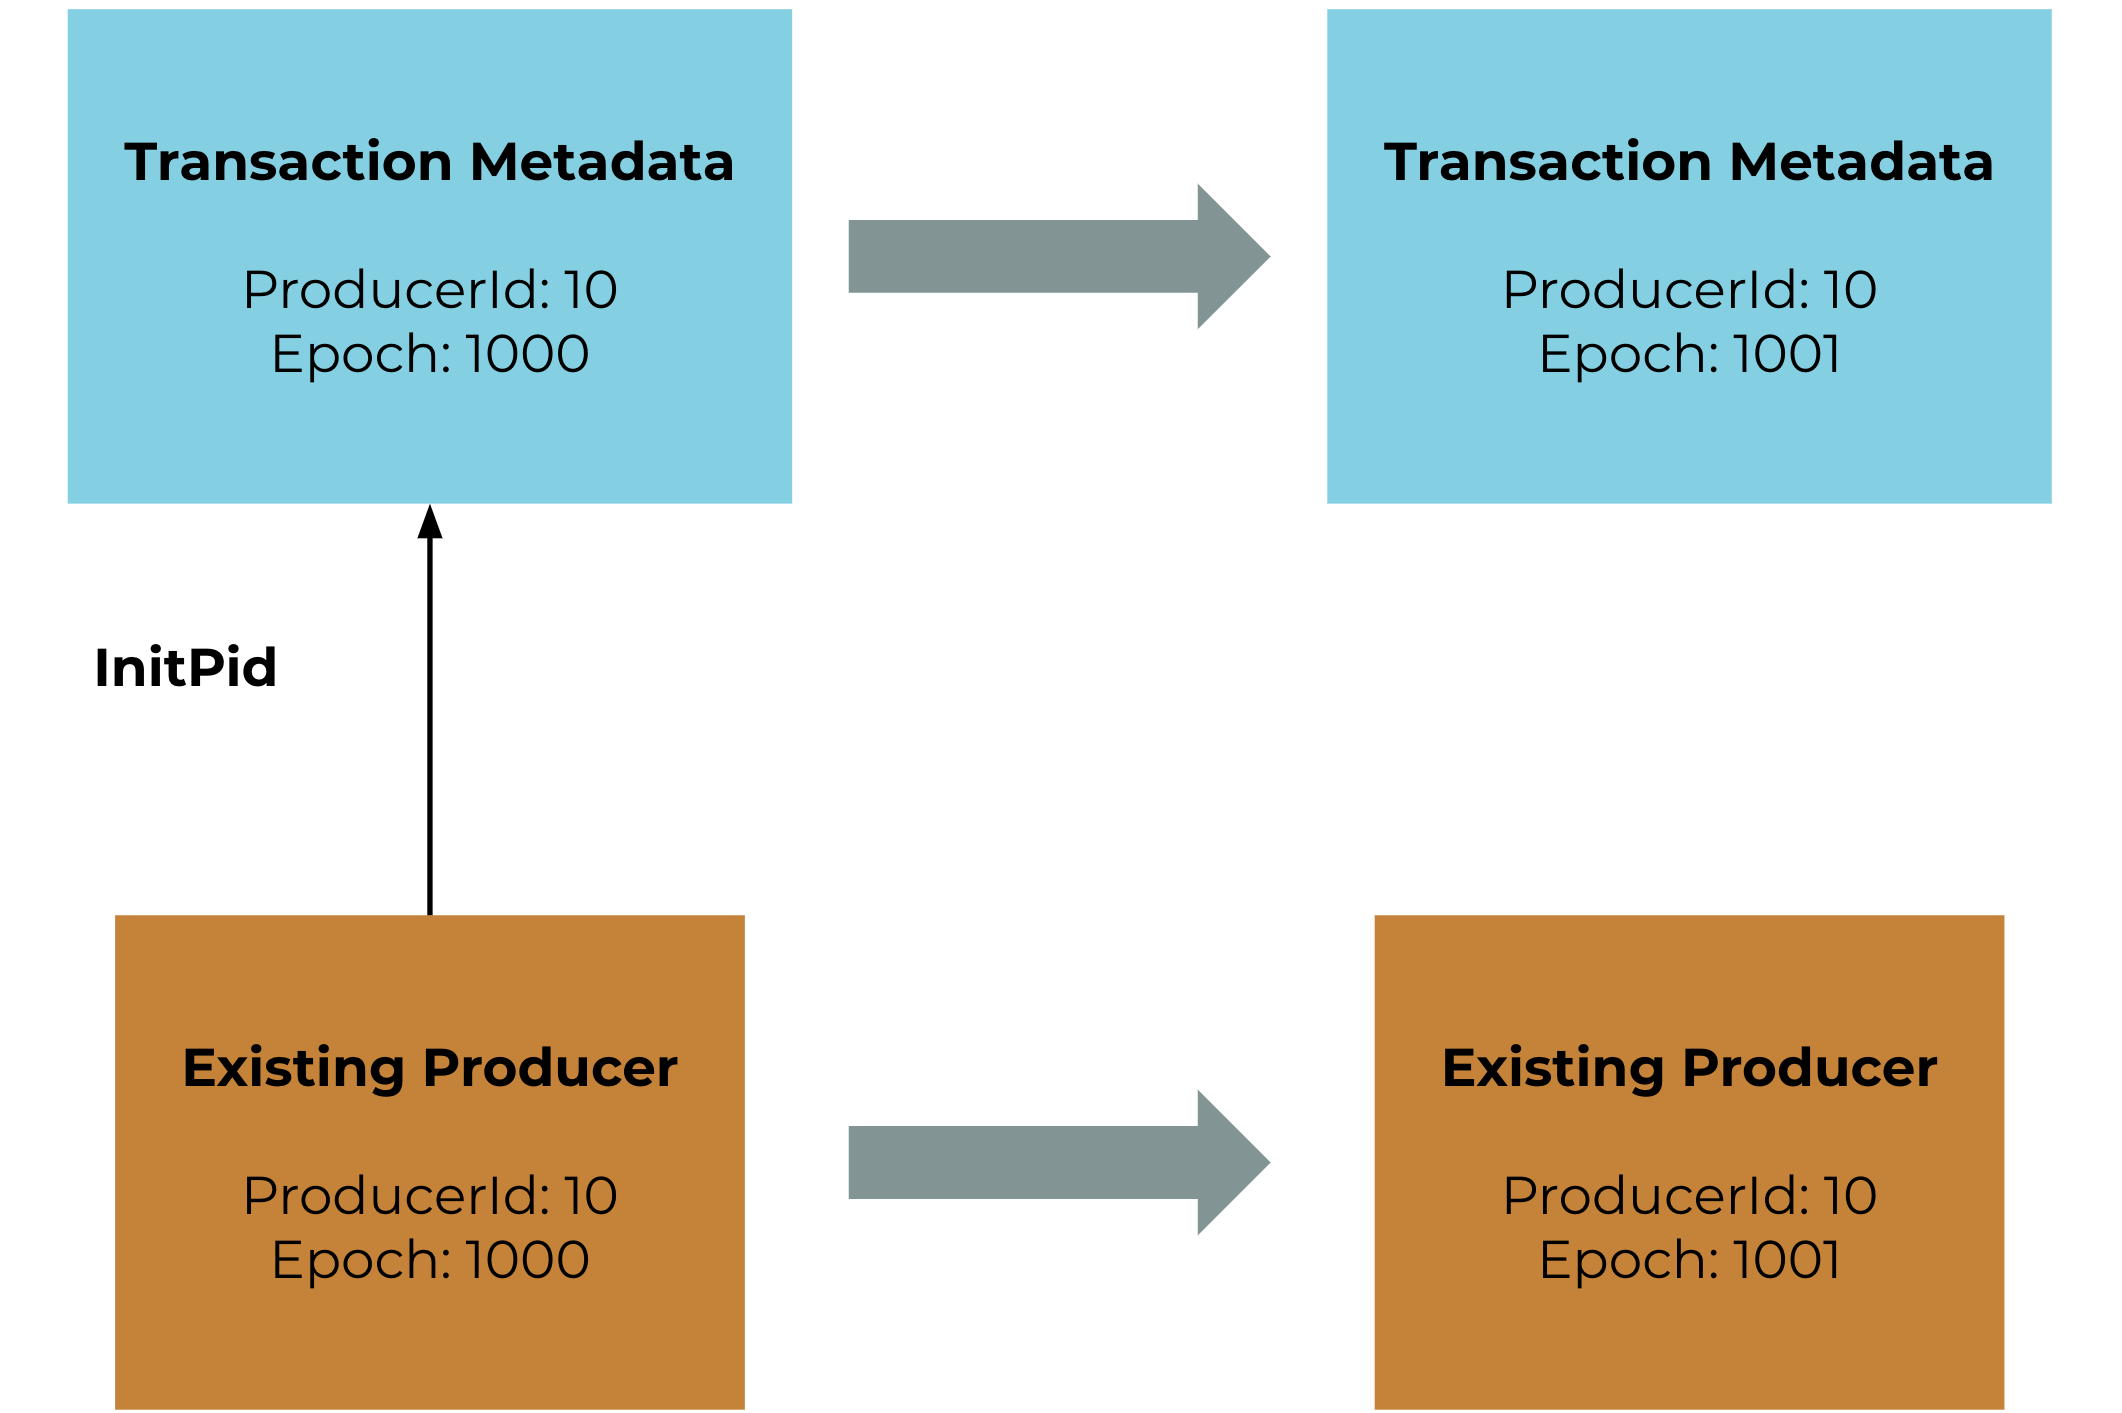 Transaction Metadata | Existing Producer